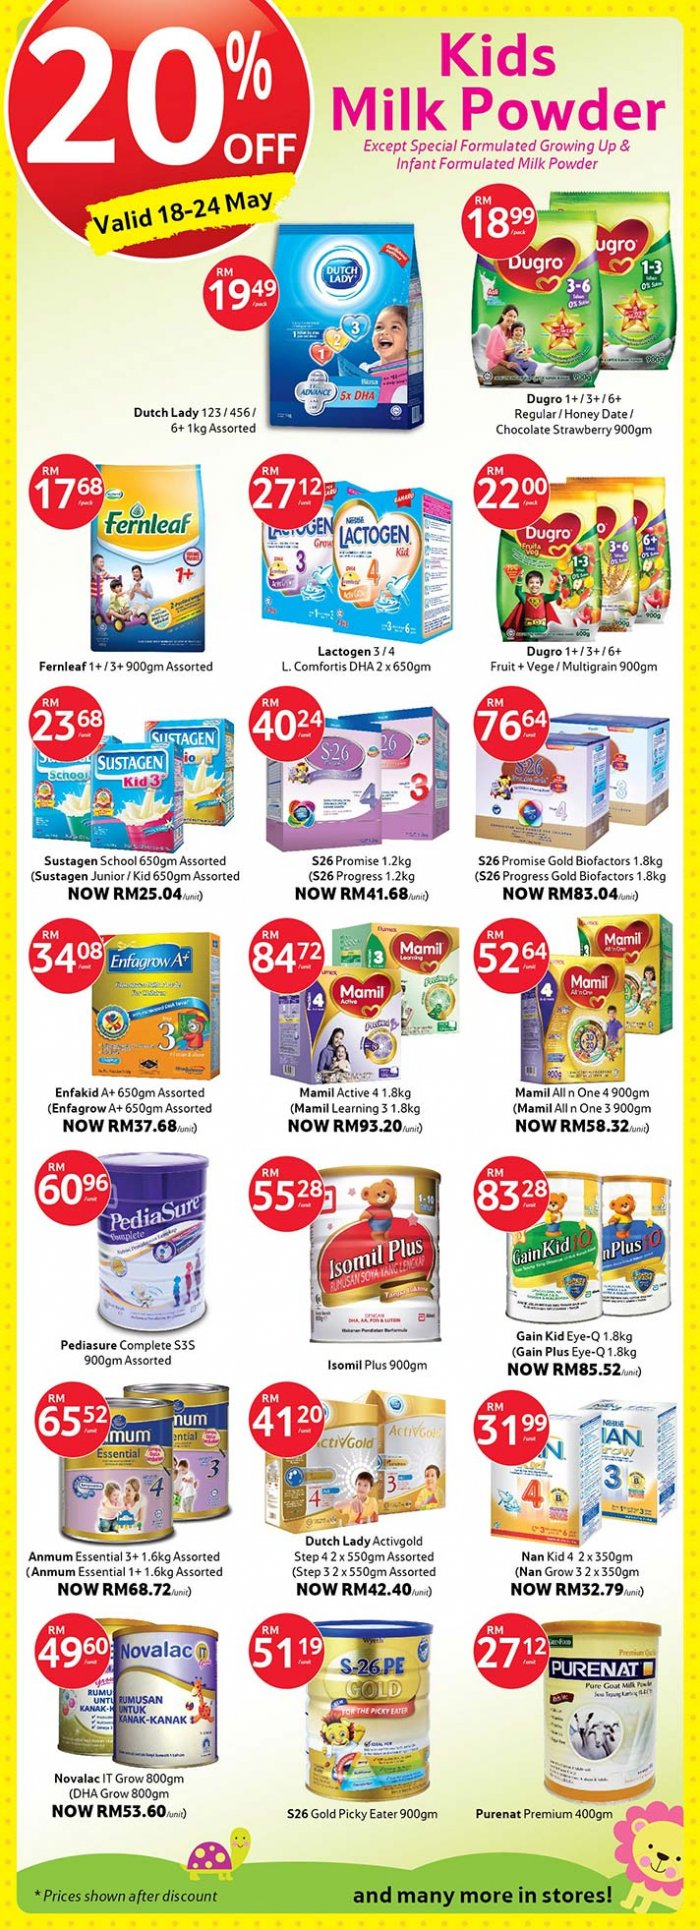 Tesco Kids Milk Powder Promotions - Up to 20% OFF